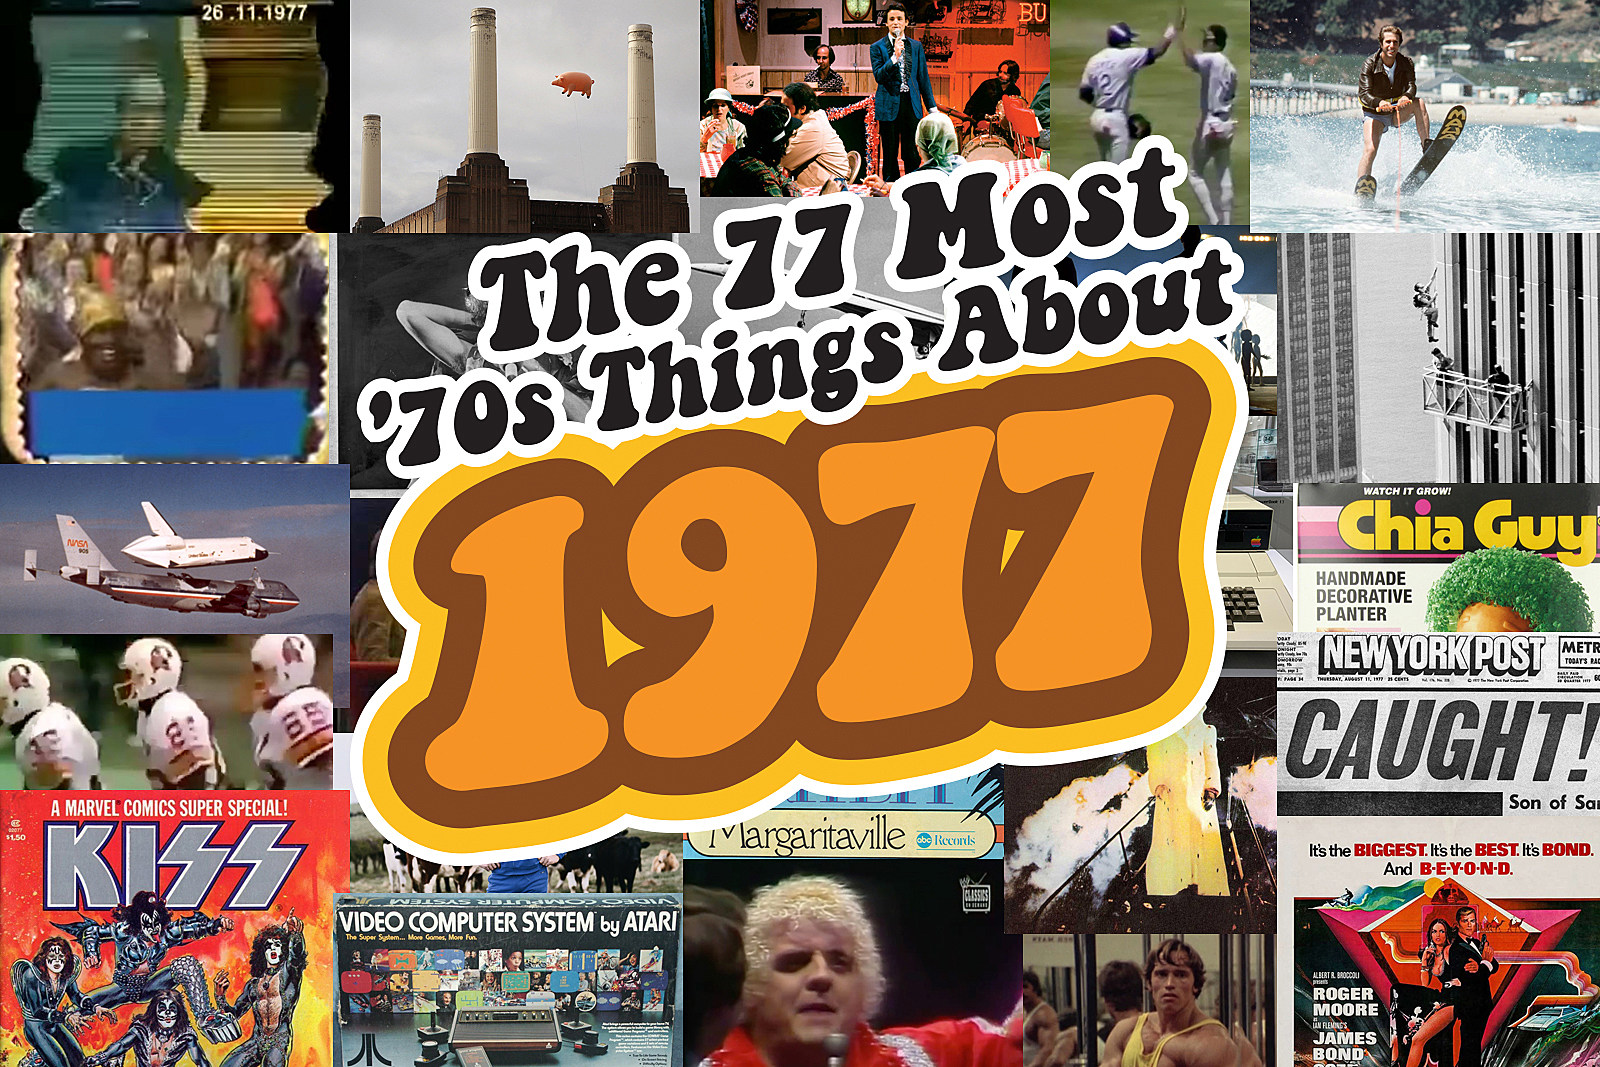 The 77 Most '70s Things About 1977